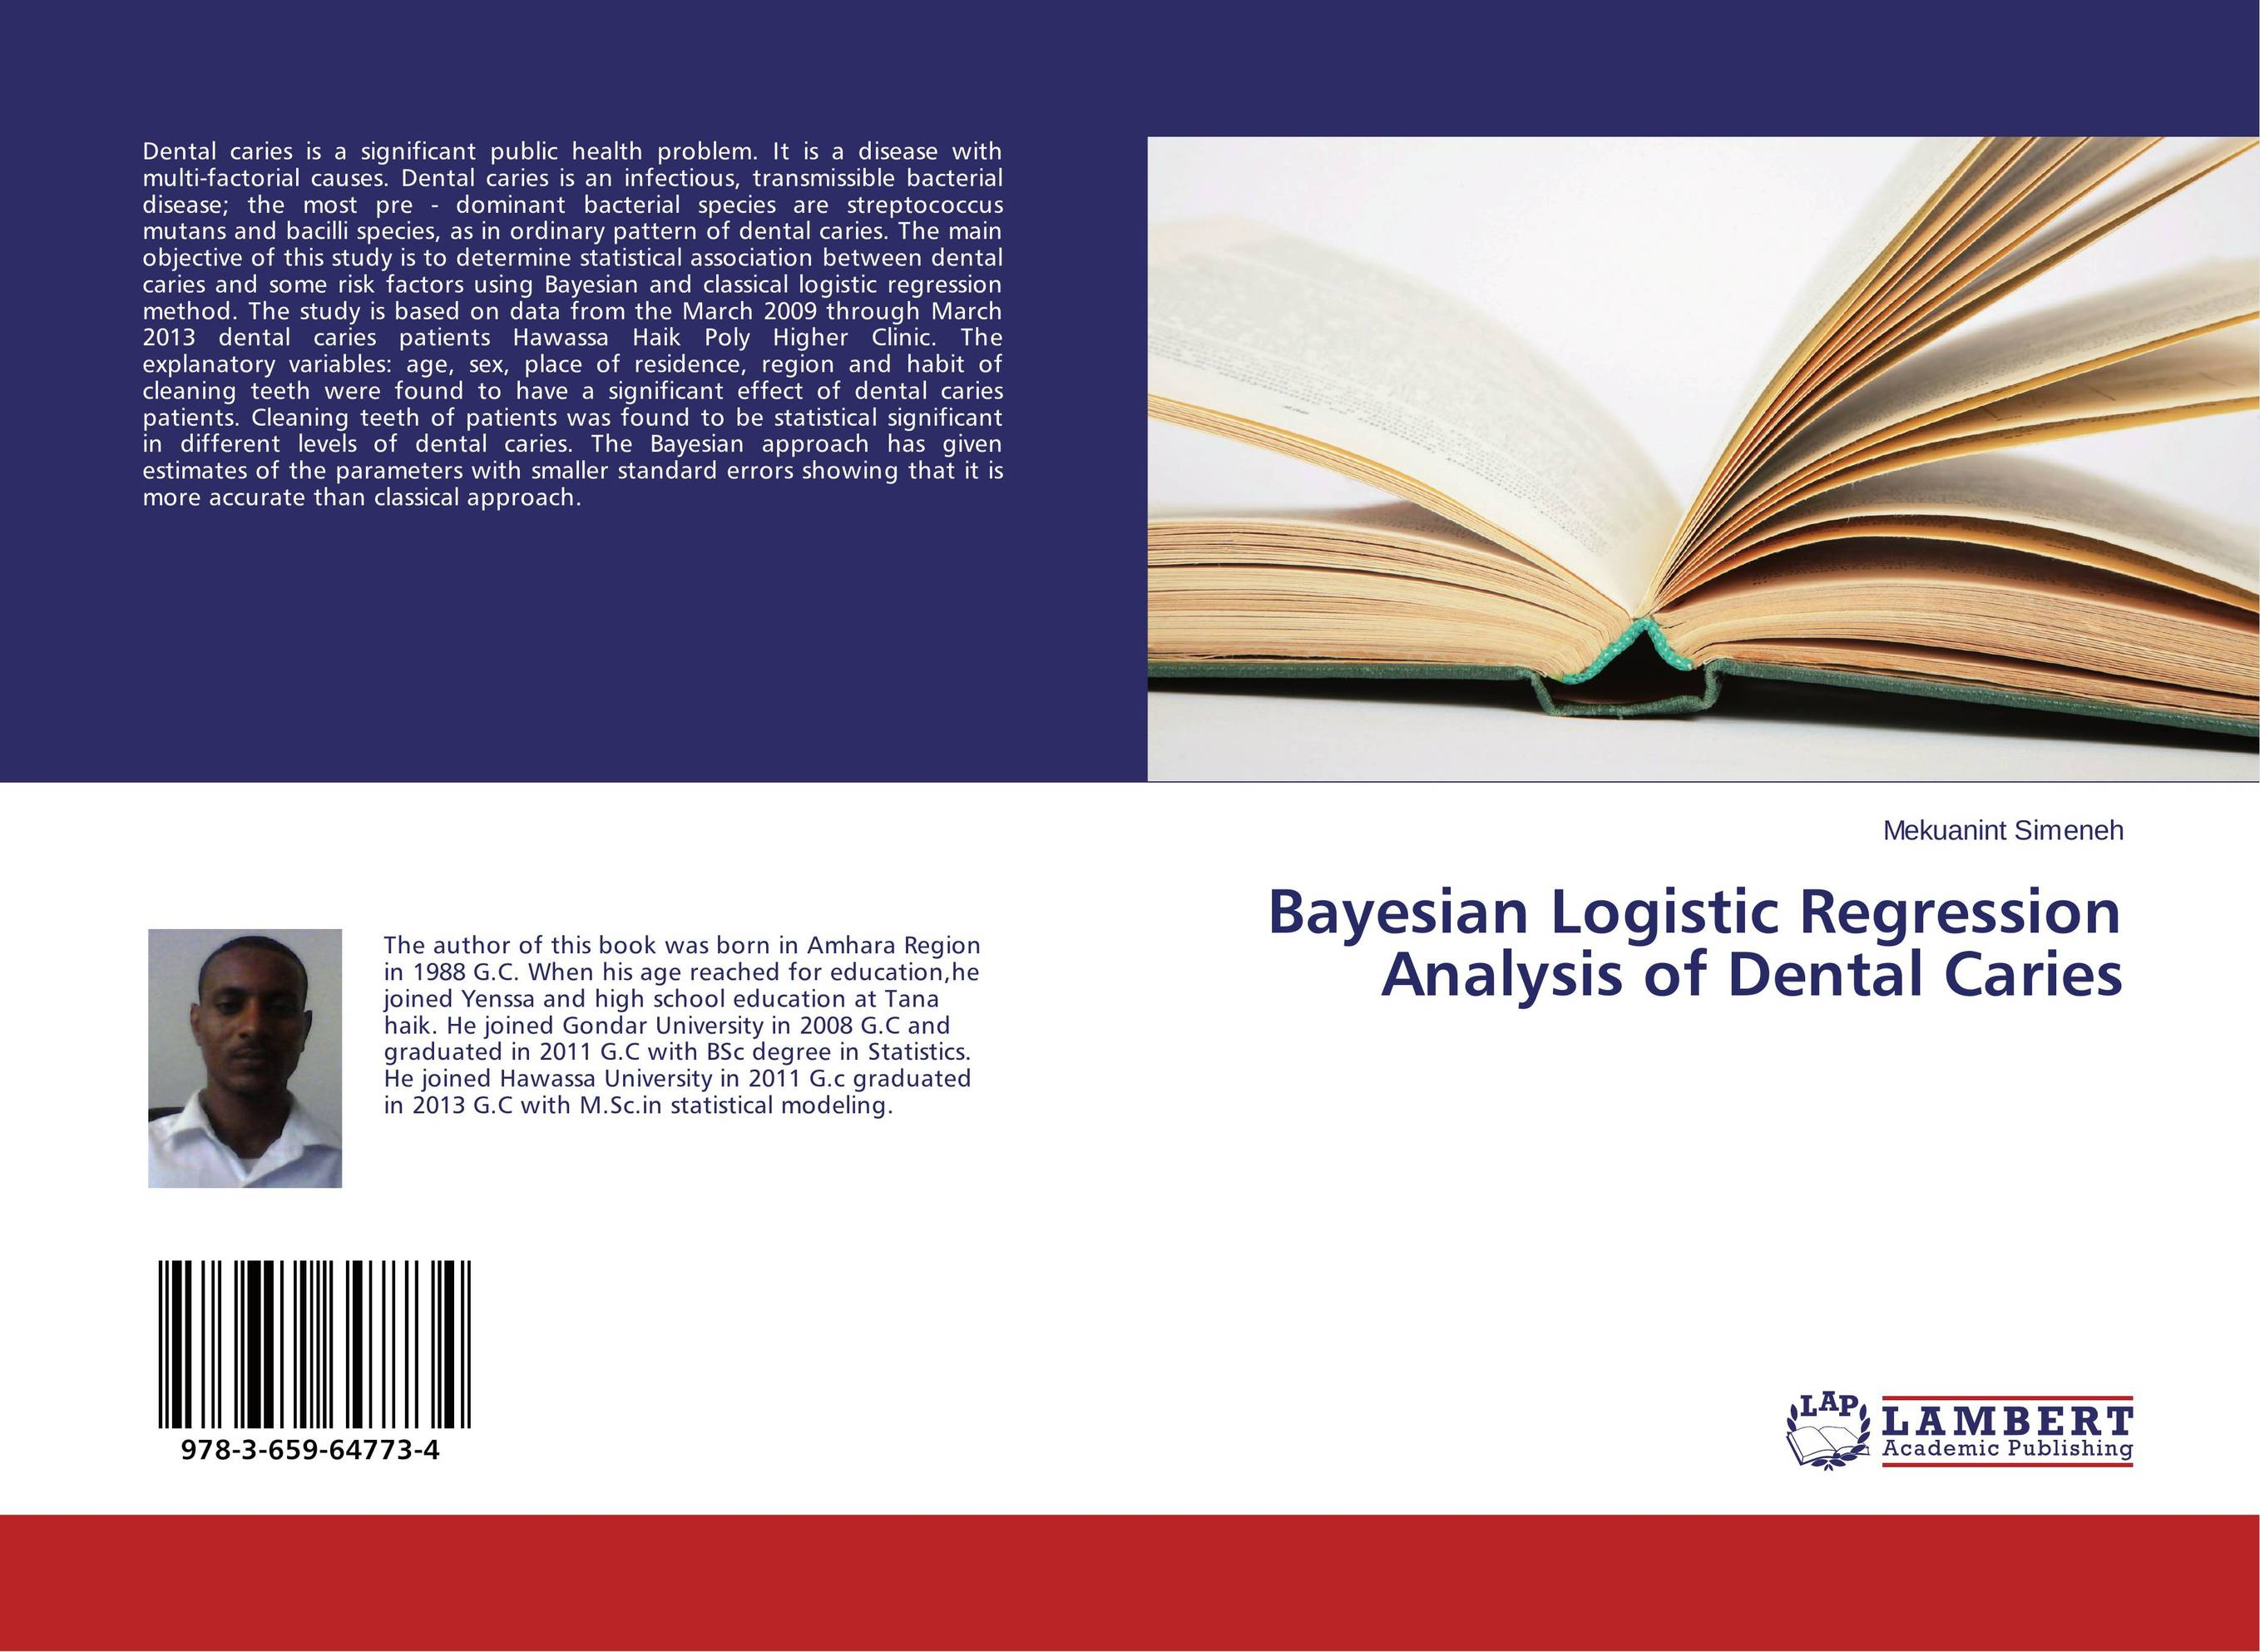 Bayesian Logistic Regression Analysis of Dental Caries cmam dental07 human dental demonstration model of periodontal caries medical science educational teaching anatomical models